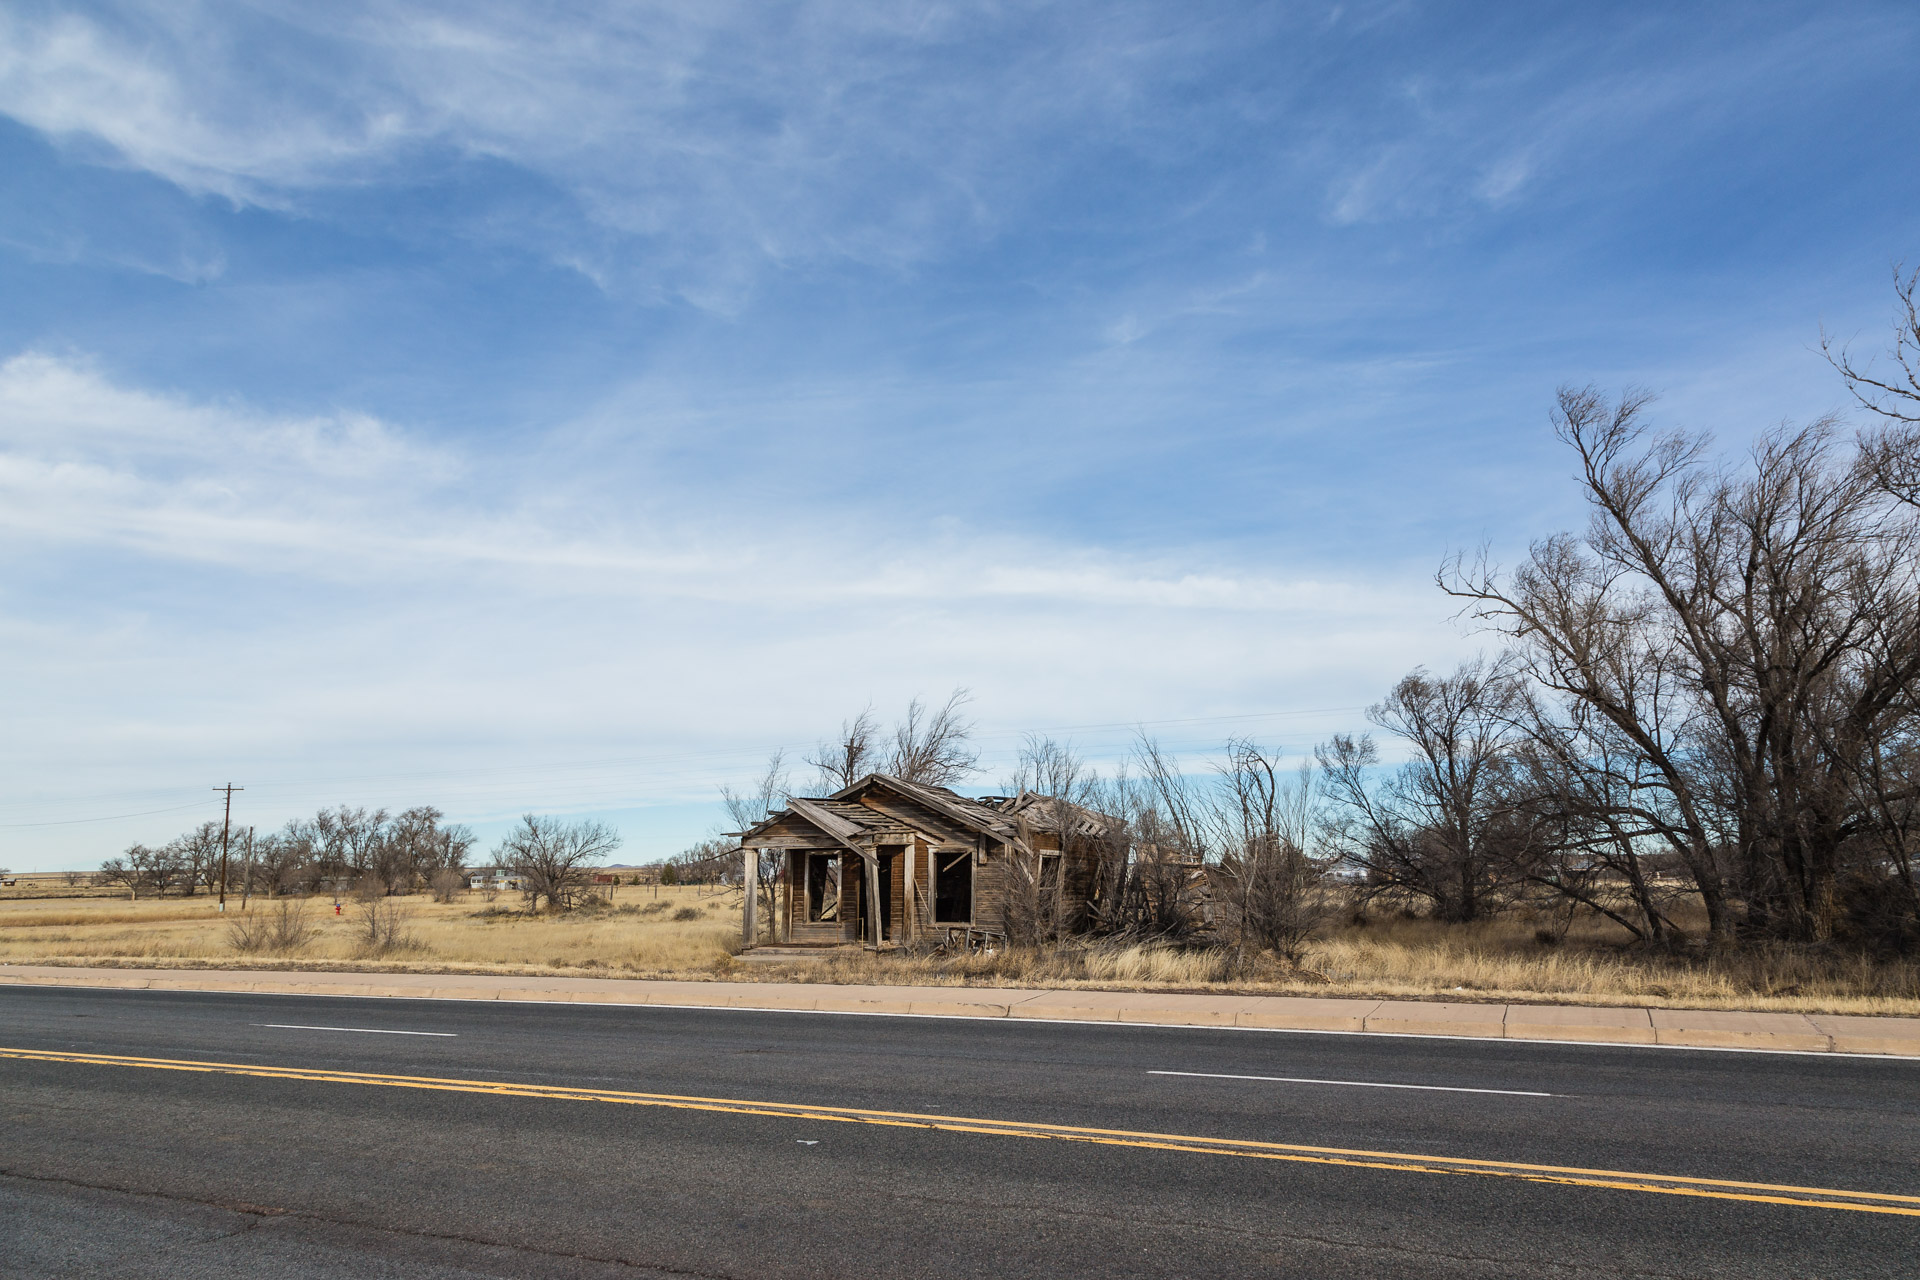 Encino, New Mexico - A Simple Wood House